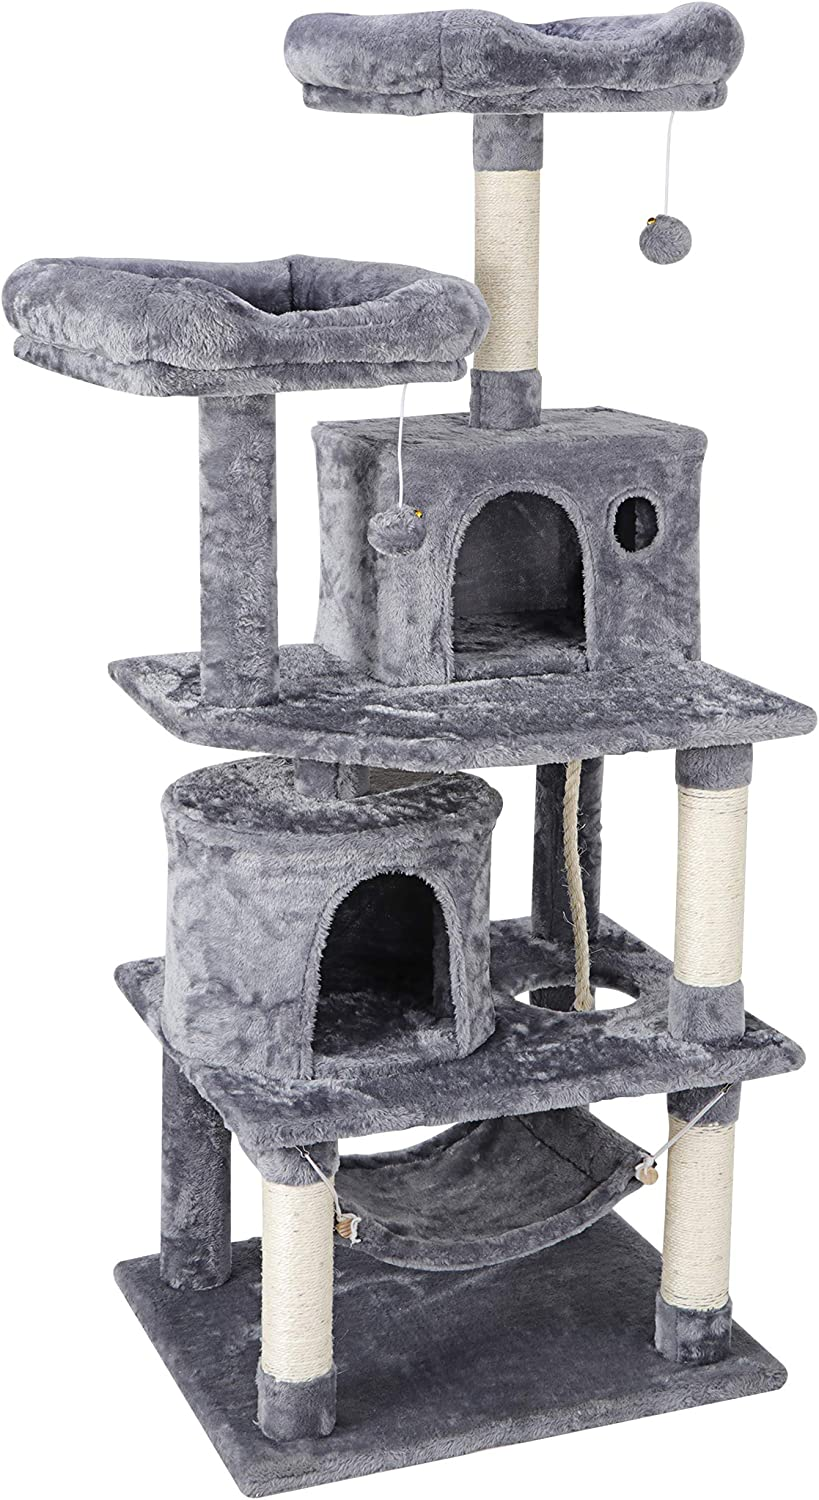 57.1 Inches Multi-Level Cat Tree Tower with Scratching Posts Perch Hammock Pet Furniture Kitten Activity Tower Kitty Play House